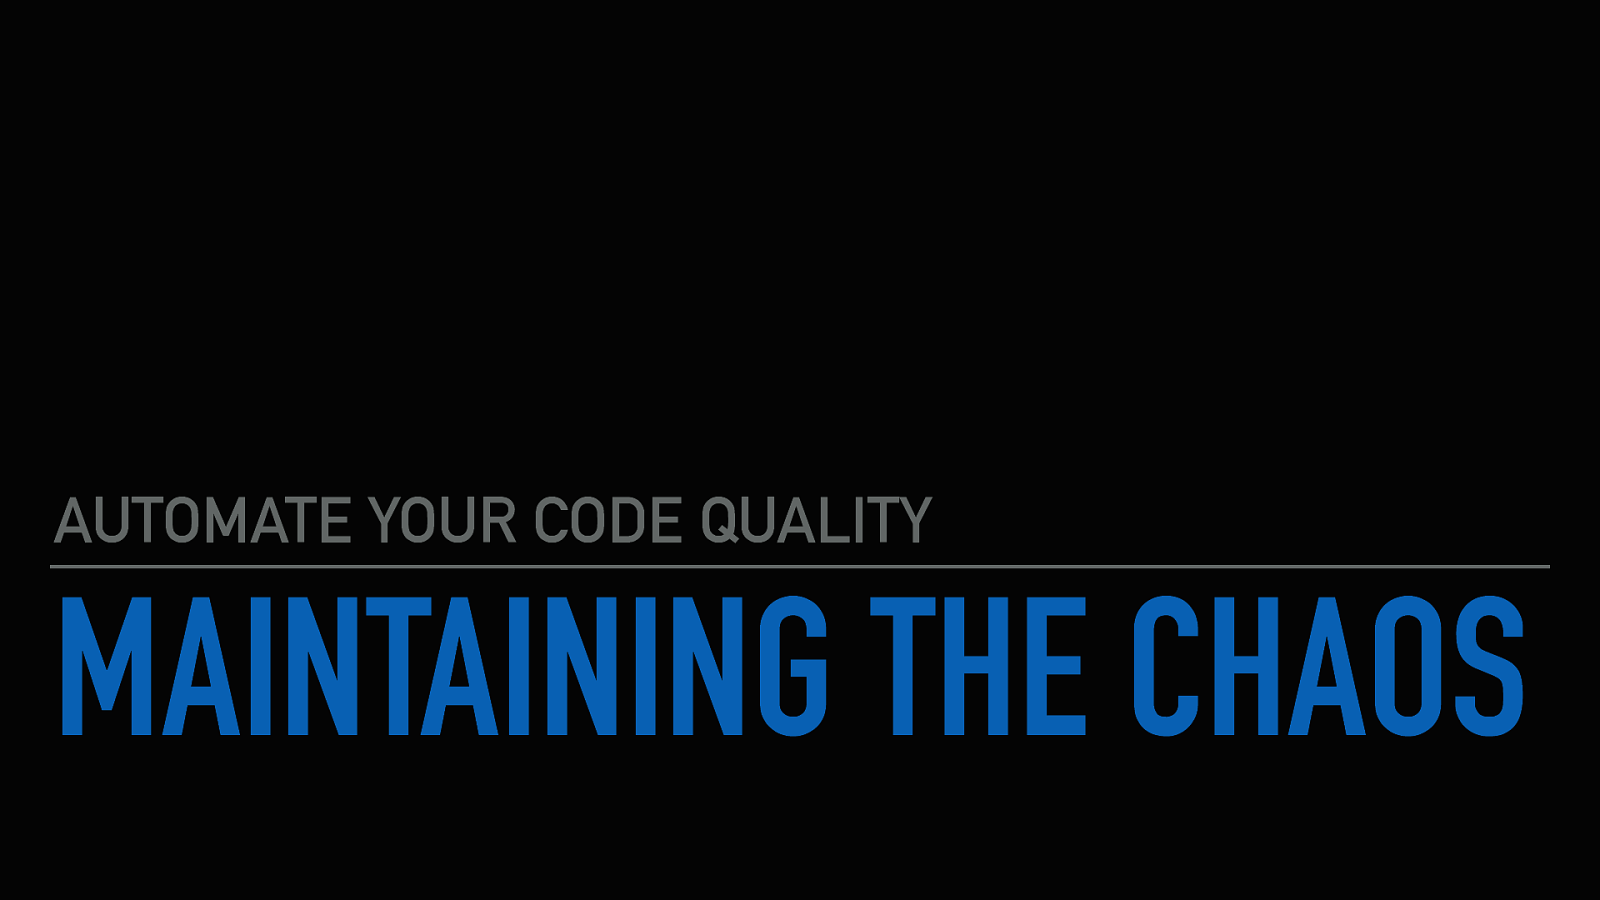 Maintaining the chaos, automate your code quality